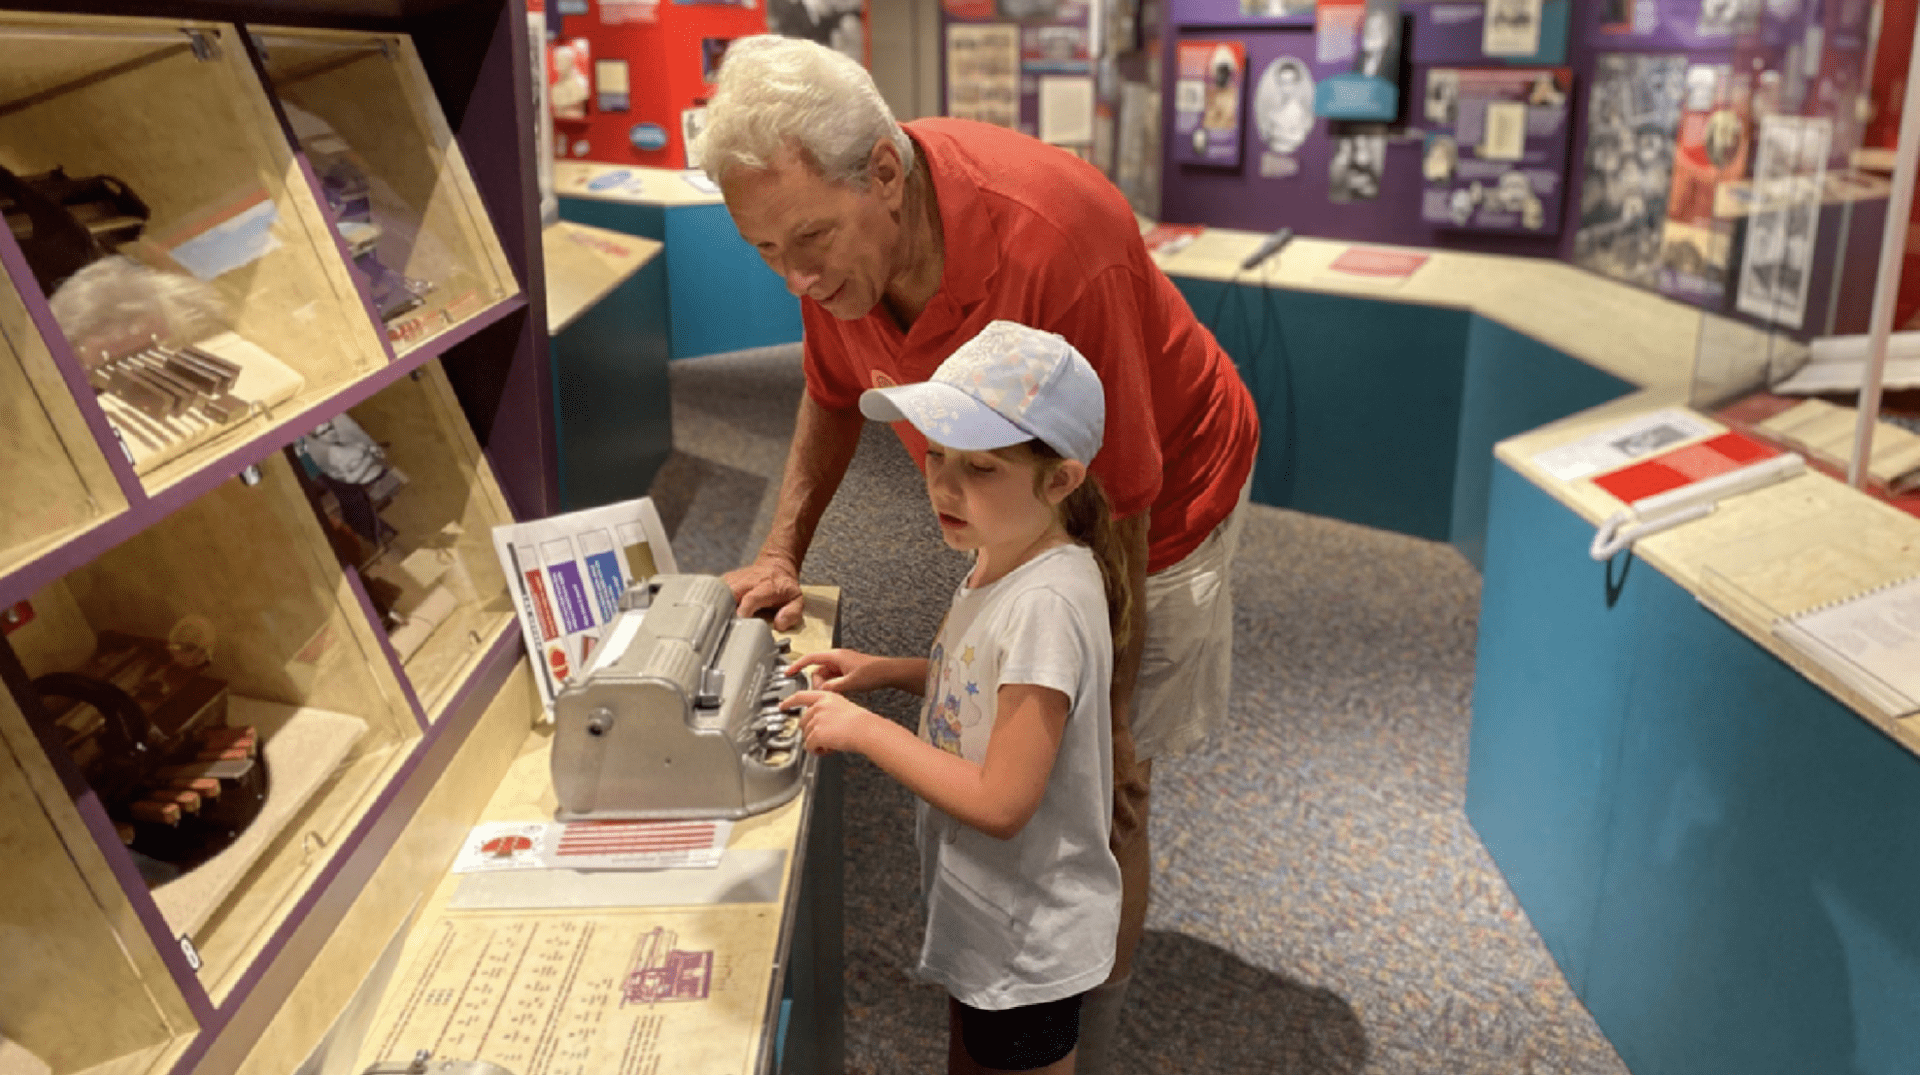 An older man watches intently as a young girl wearing a baseball hat demonstrates how to use the braillewriter.